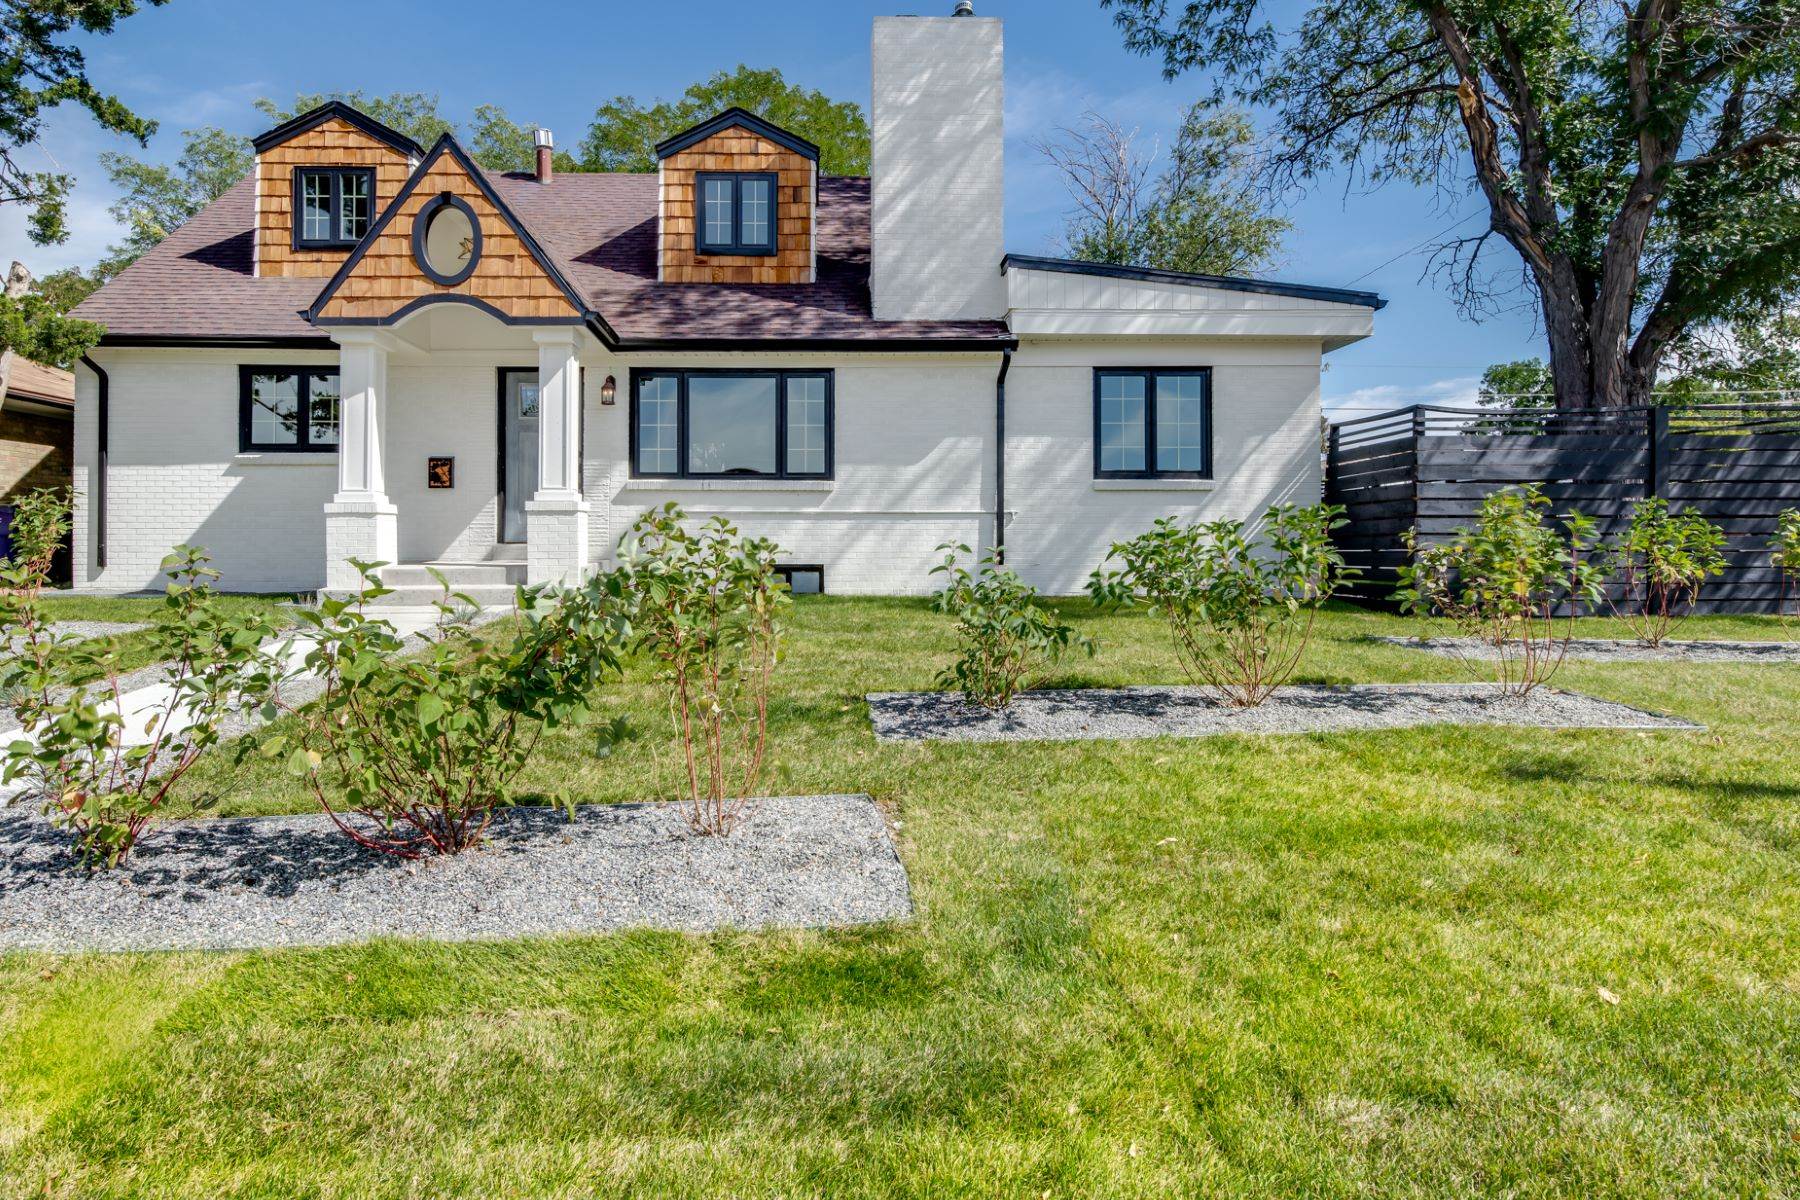 Single Family Home for Active at 900 Grape Street 900 Grape Street Denver, Colorado 80220 United States